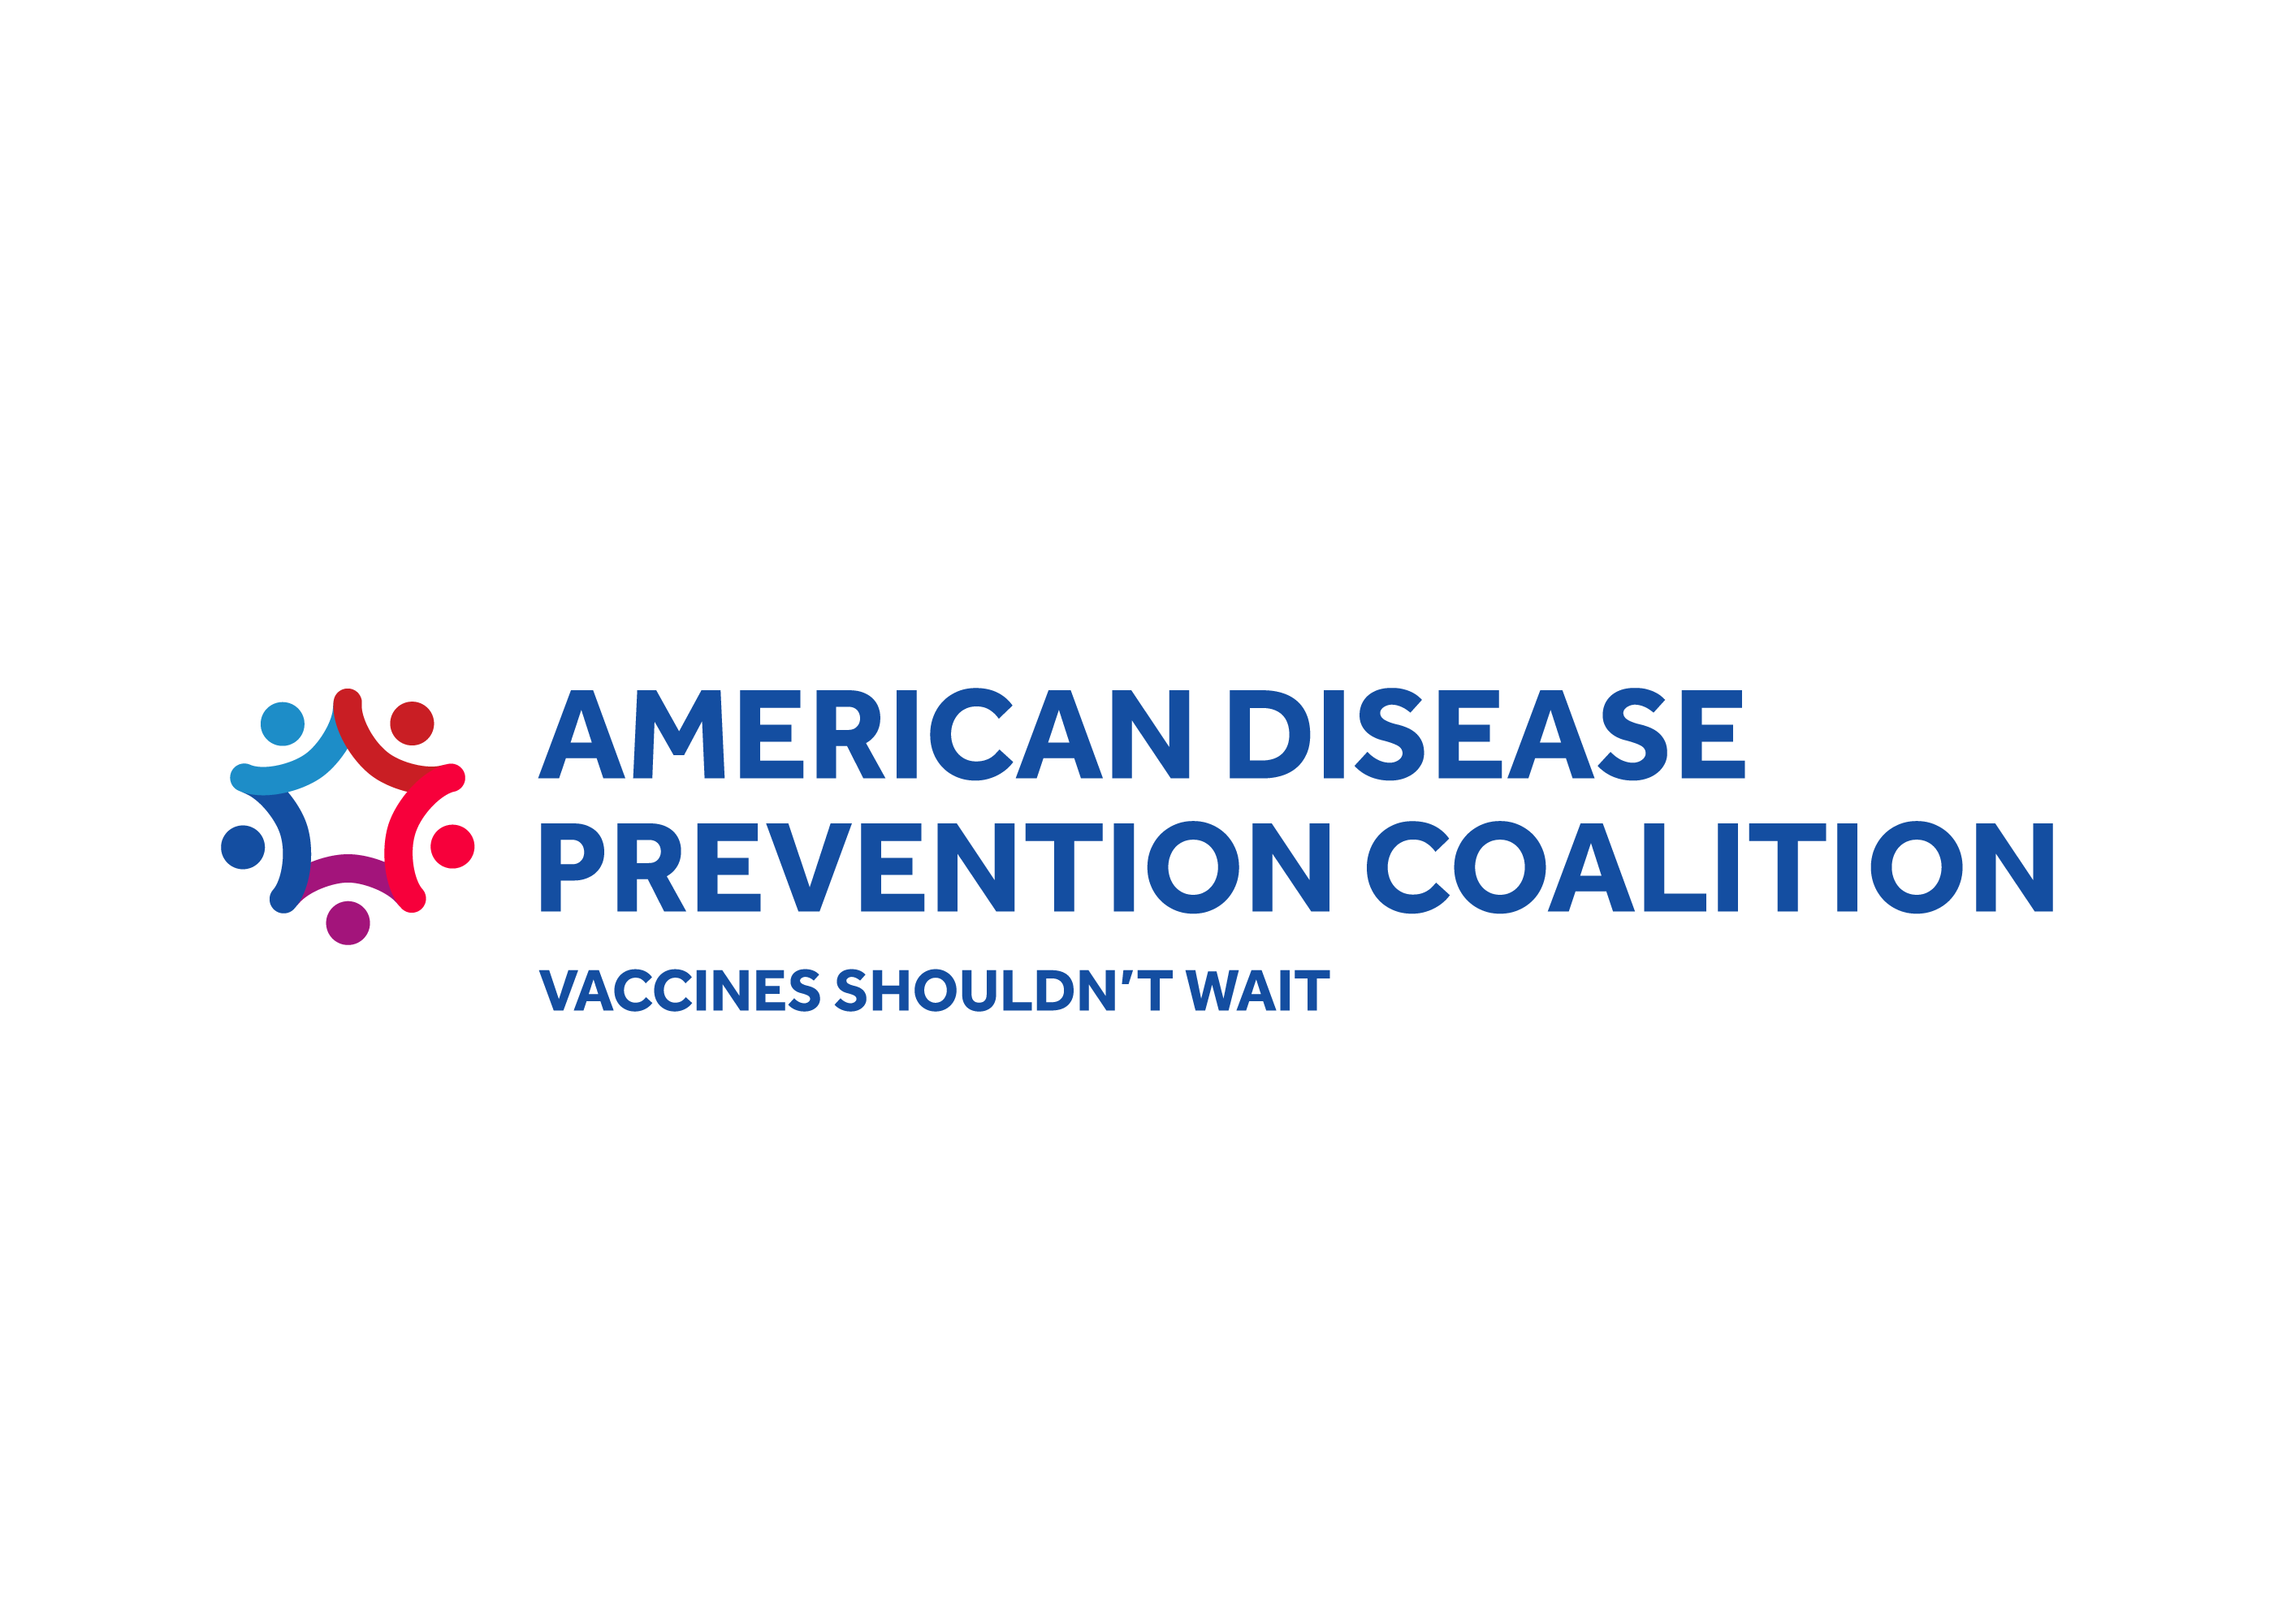 American Disease Prevention Coalition Campaign Logo